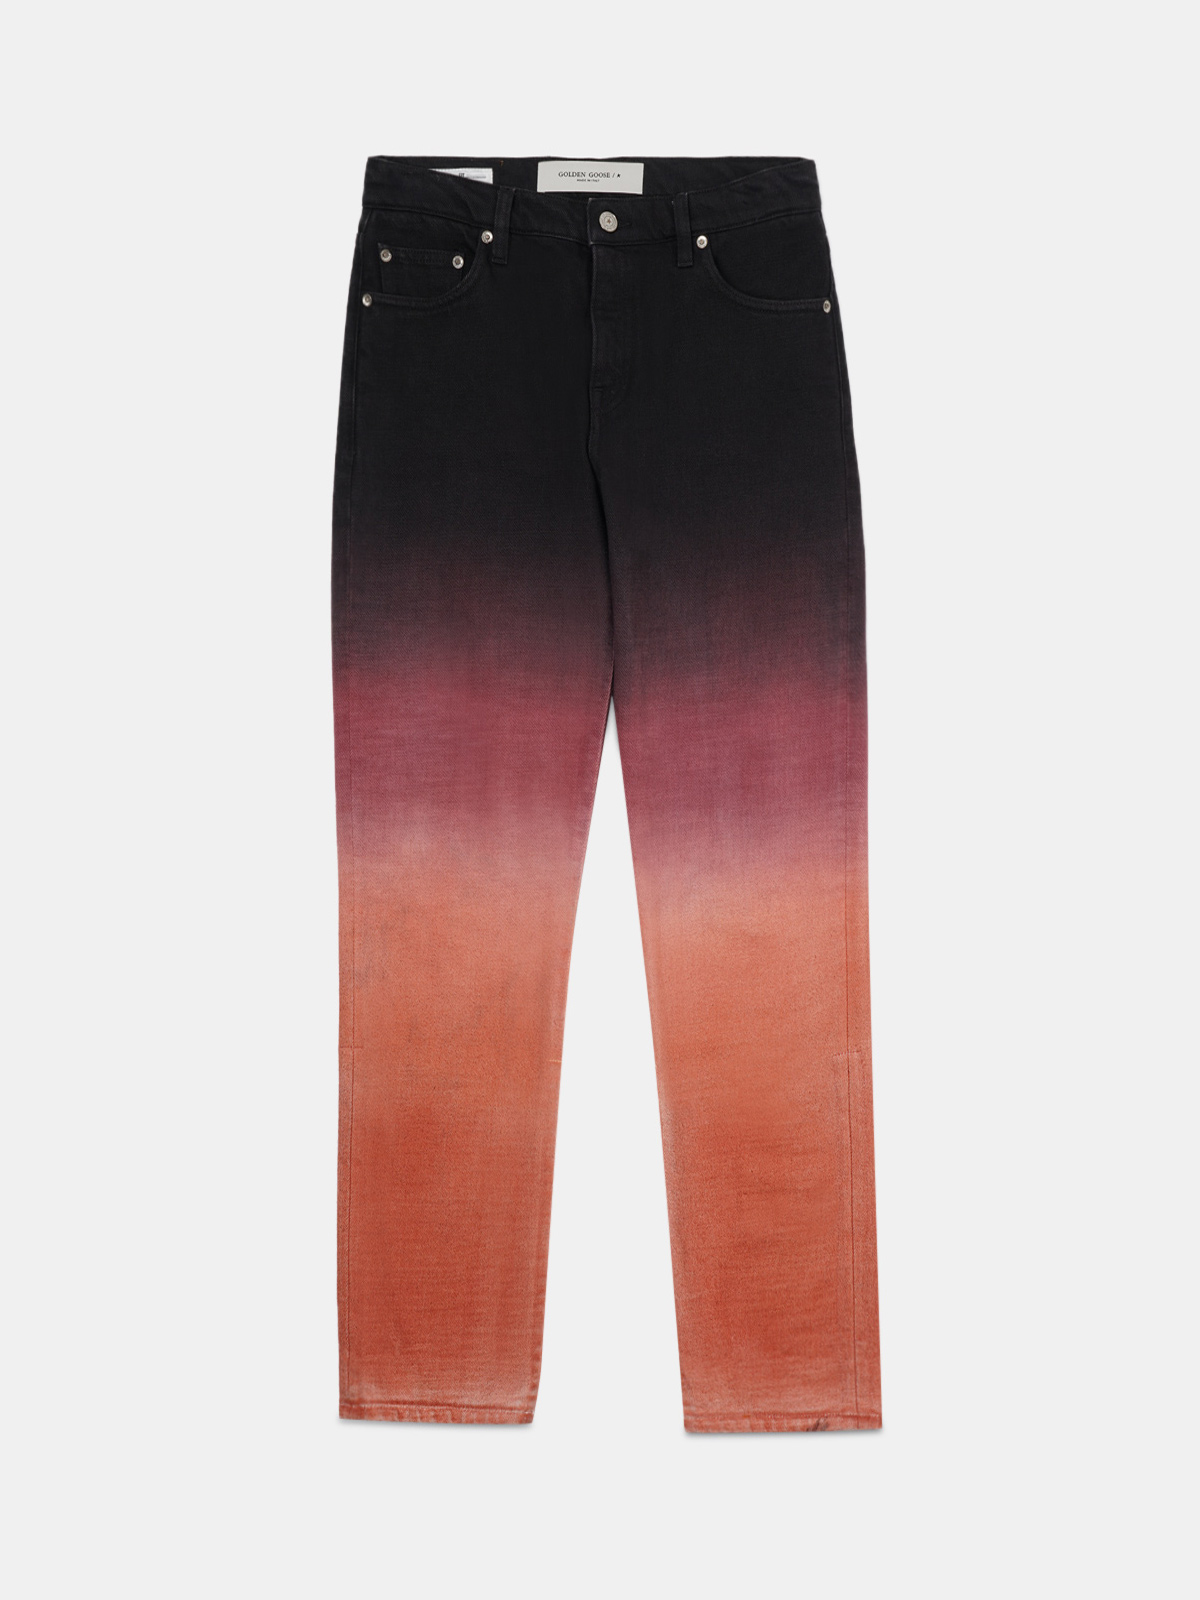 Golden Goose - Amy jeans in denim dyed for a shaded effect in